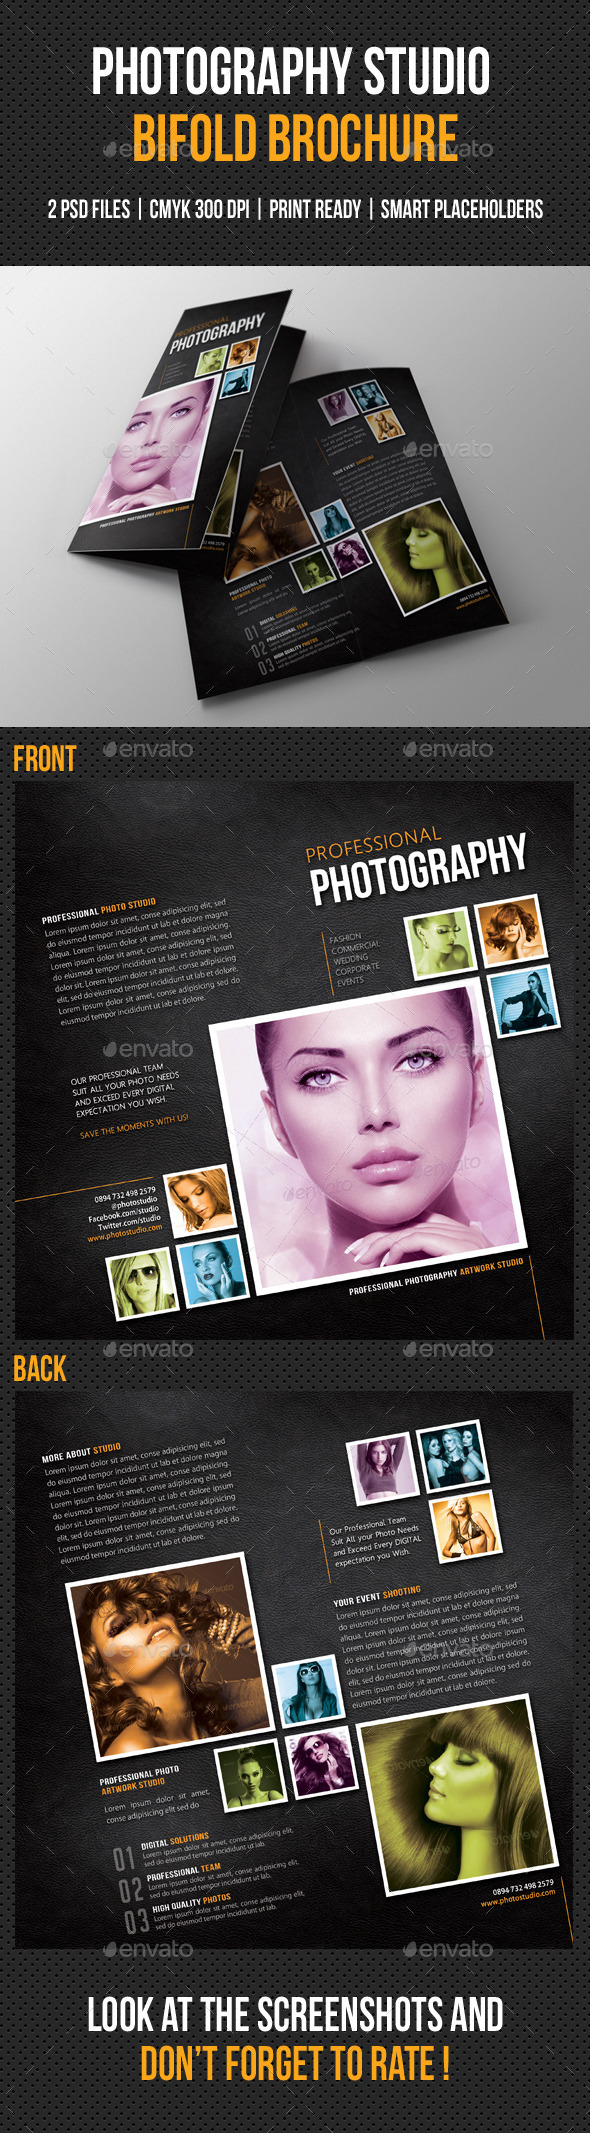 GraphicRiver Photography Studio Bifold Brochure 02 9081224